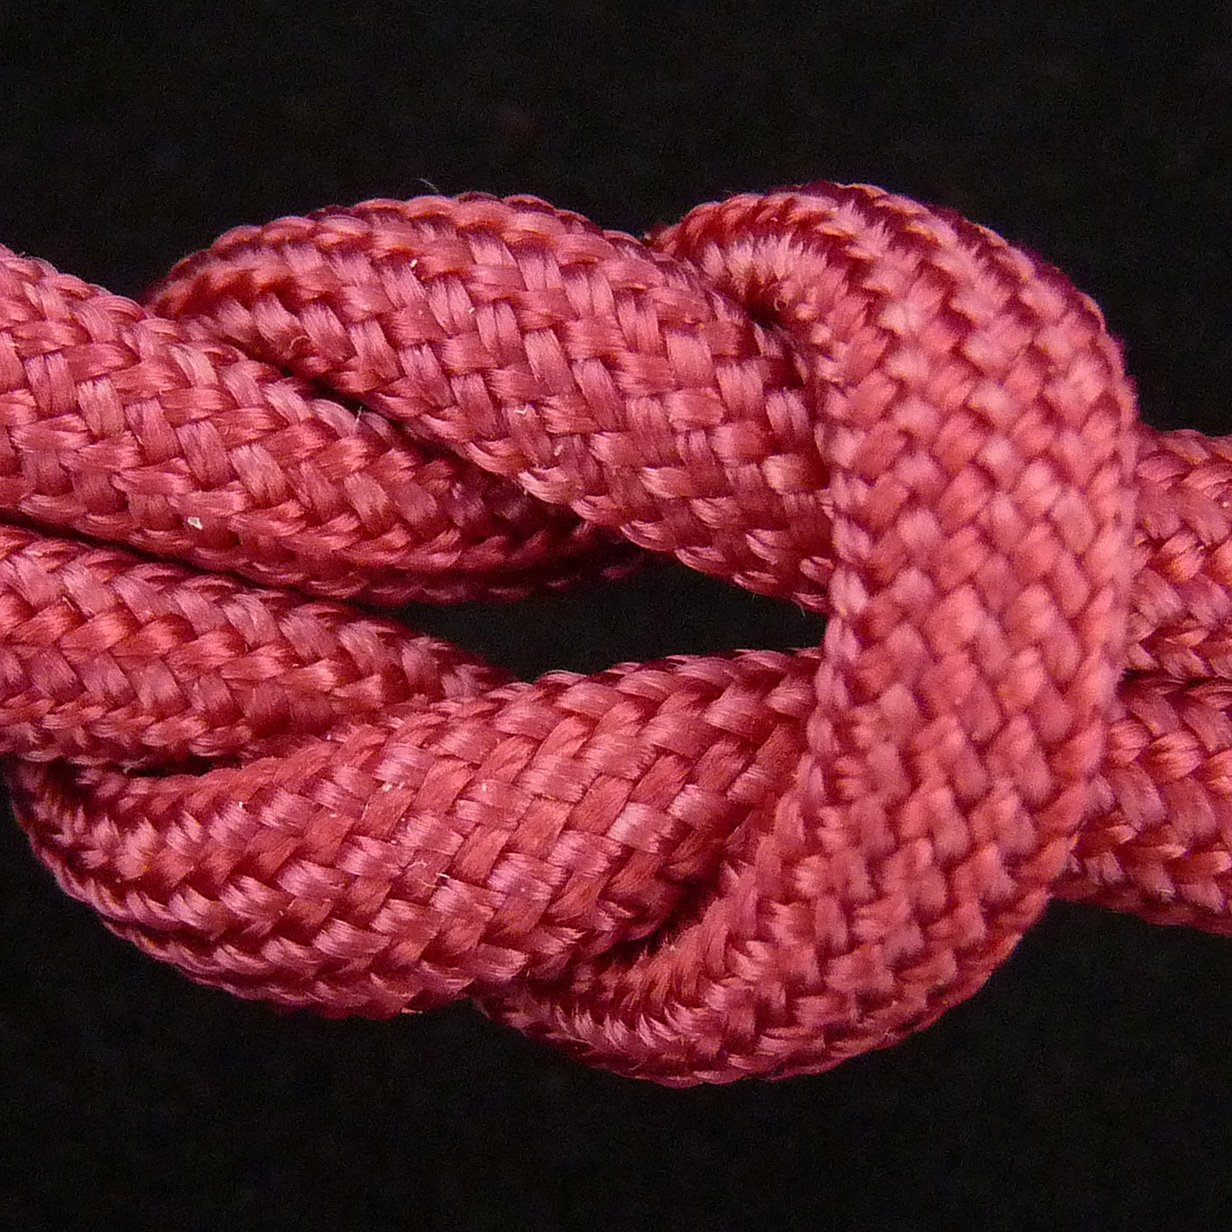 MilSpec Paracord Cranberry Red 310 ft. Spool, Military Survival Braided Parachute 550 Cord. Use with Paracord Tools for Tent Camping, Hiking, Hunting Ropes, Bracelets & Projects. Plus 2 eBooks. by Paracord 550 Mil-Spec (TM) (Image #10)